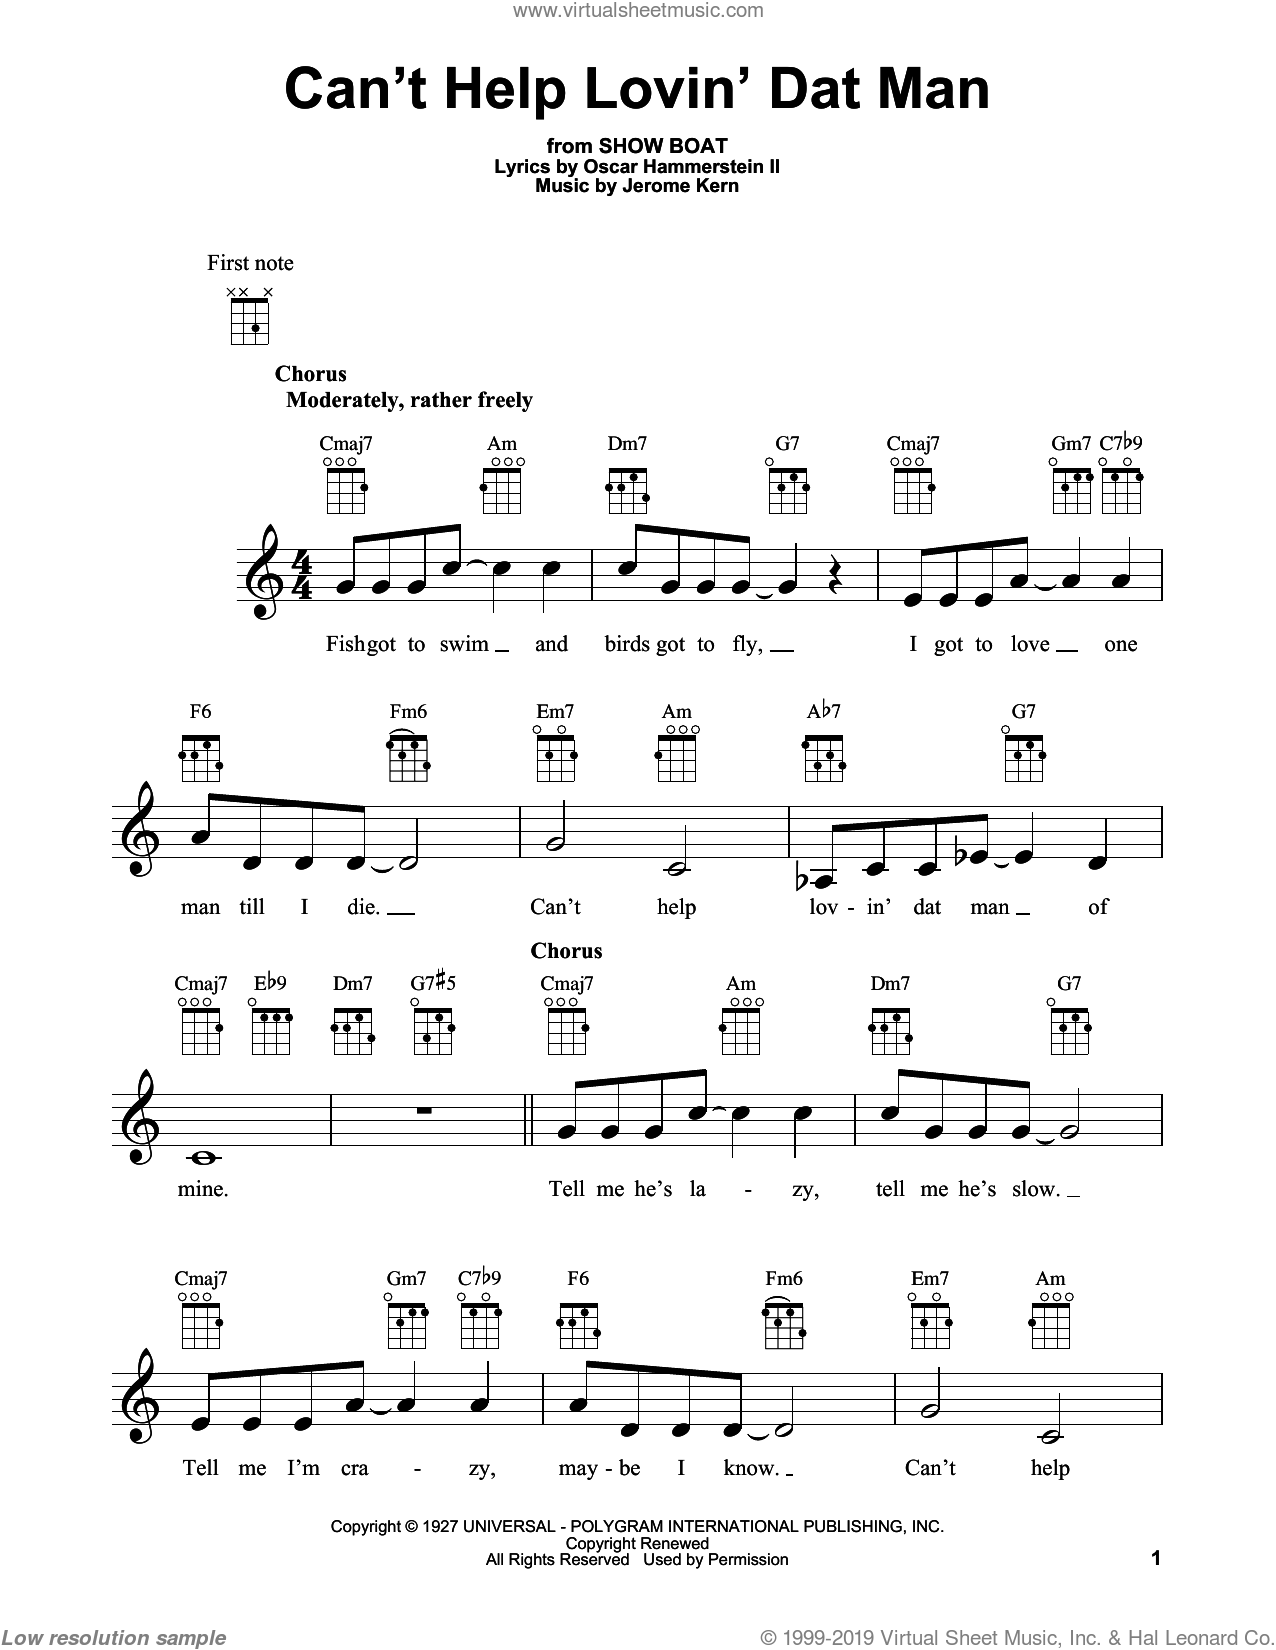 Can't Help Lovin' Dat Man sheet music for ukulele by Oscar II Hammerstein